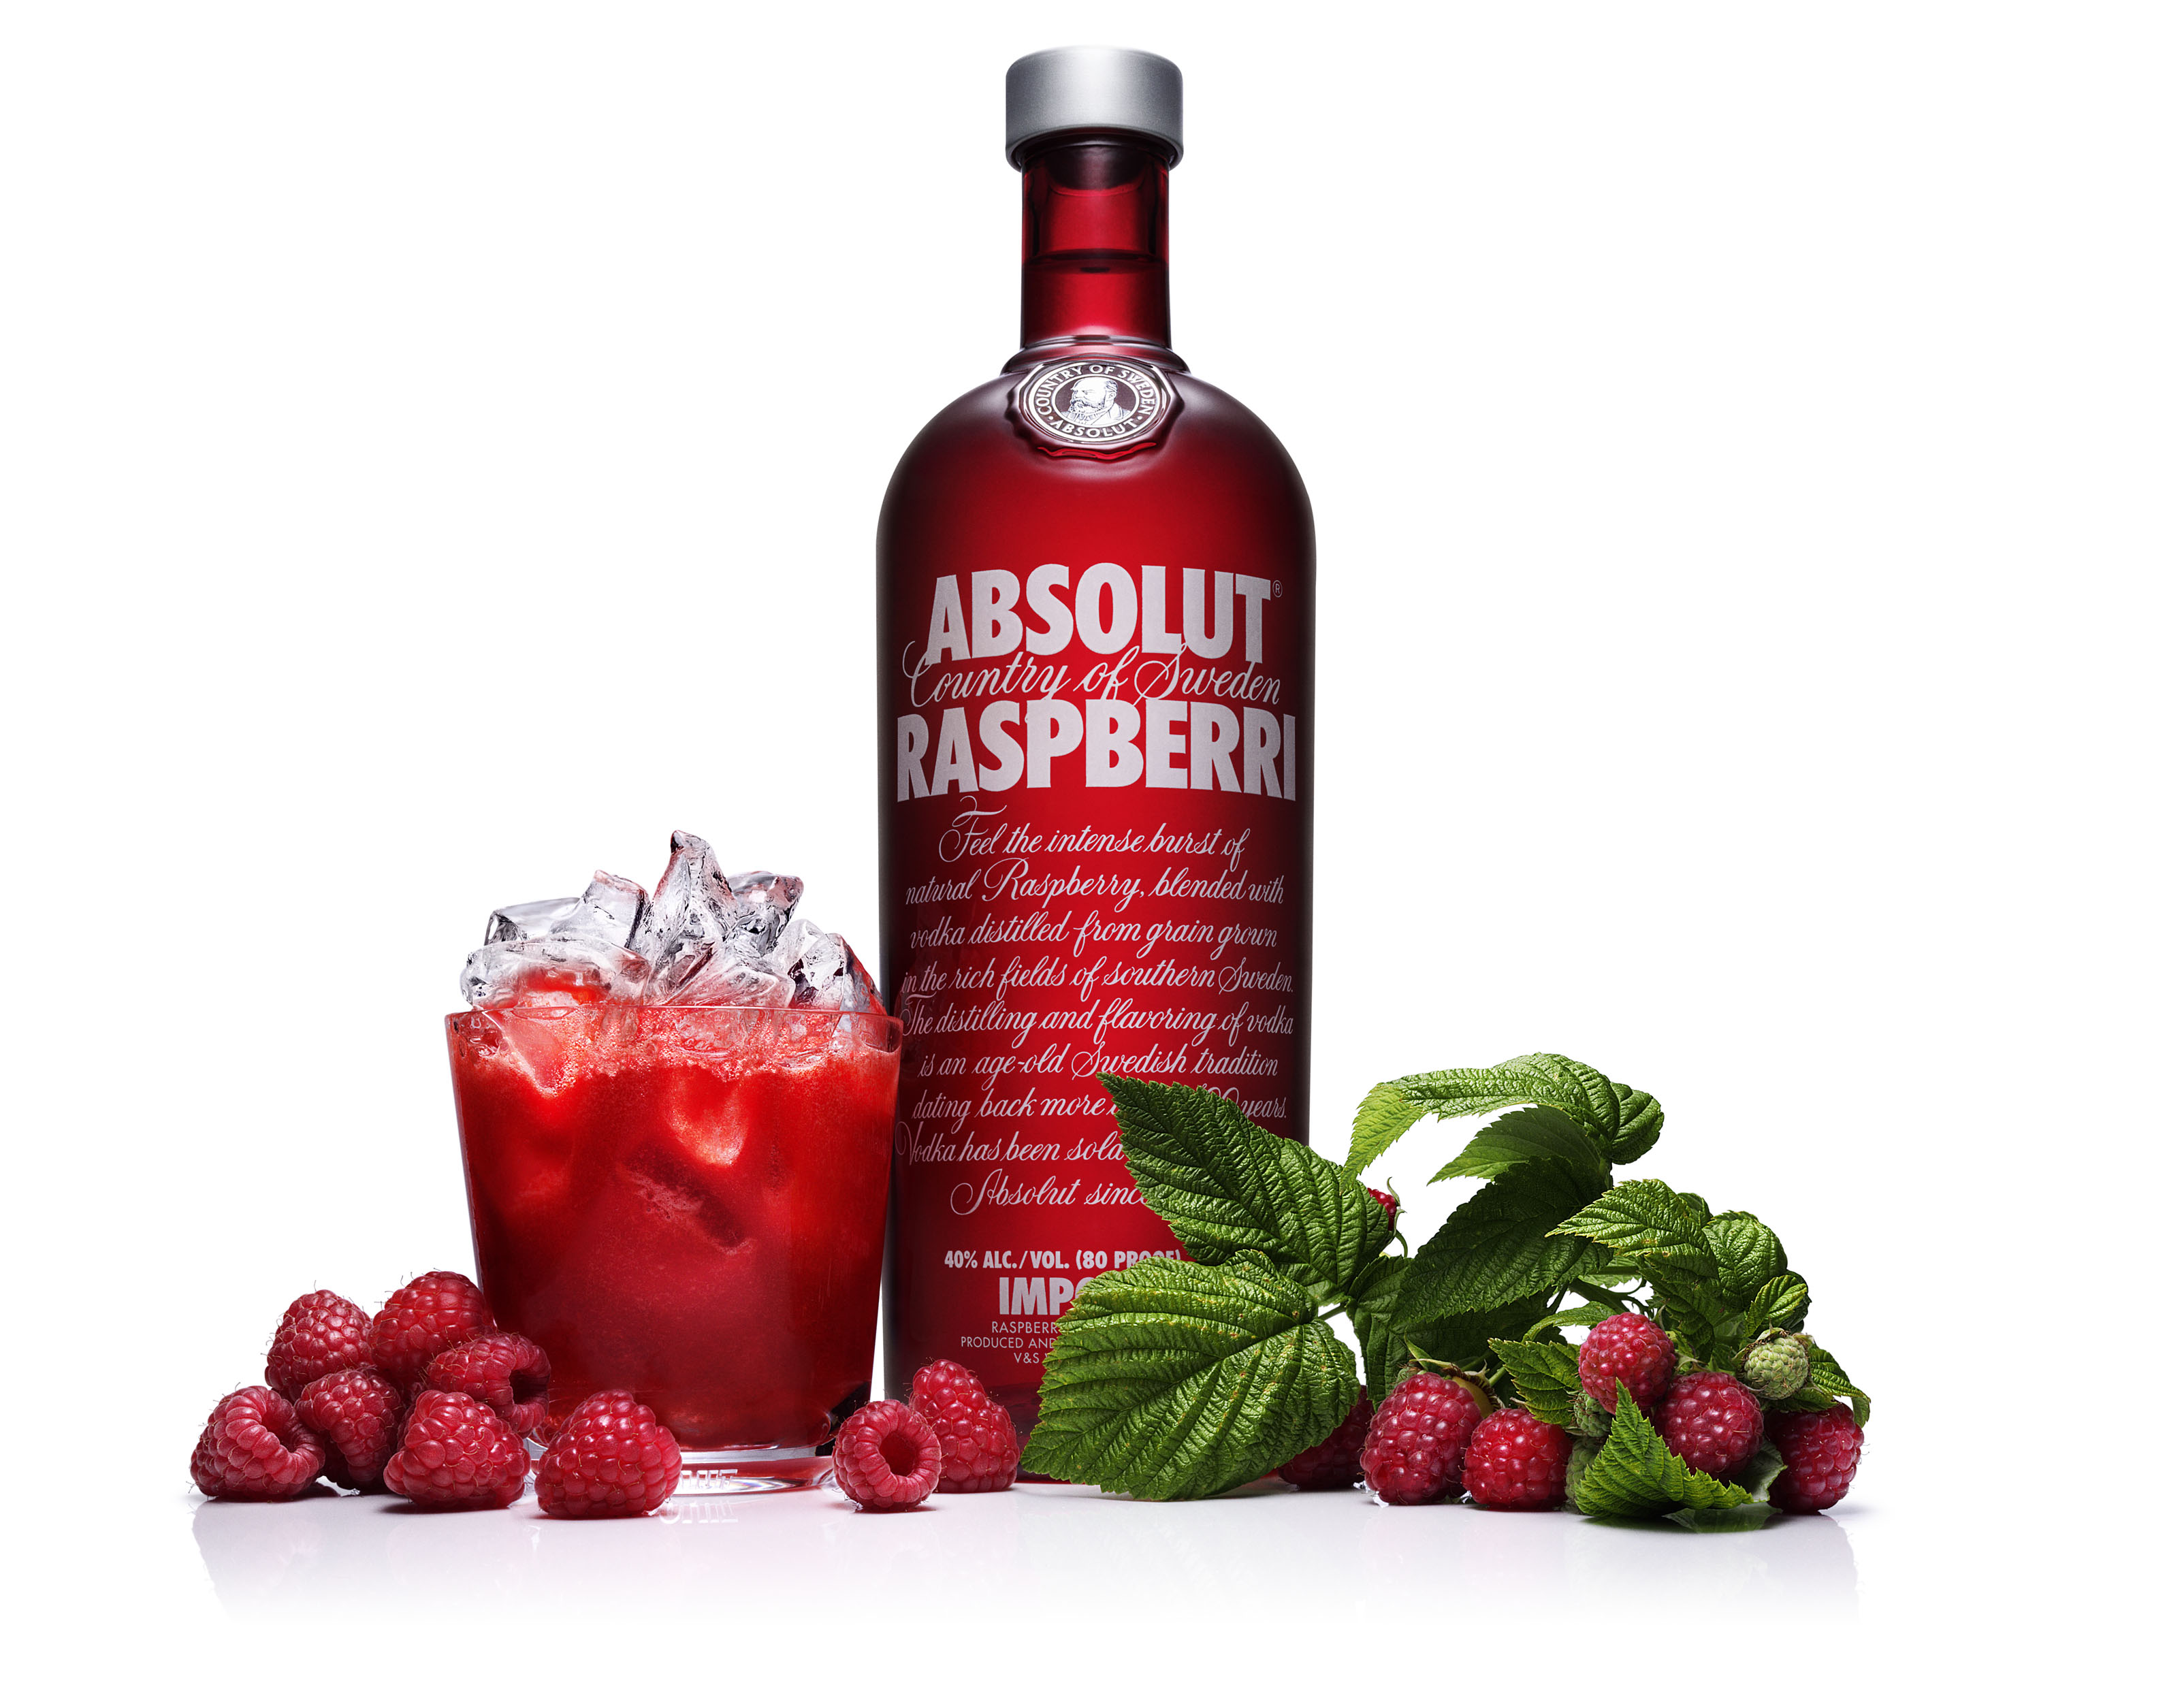 jensmortensen-absolut-vodka-38450497